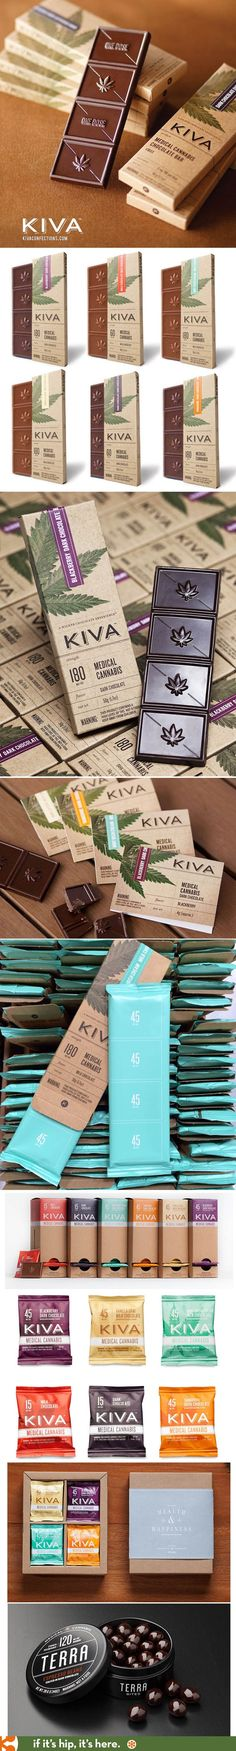 Kiva Confections. Excellent branding. Very interesting product.